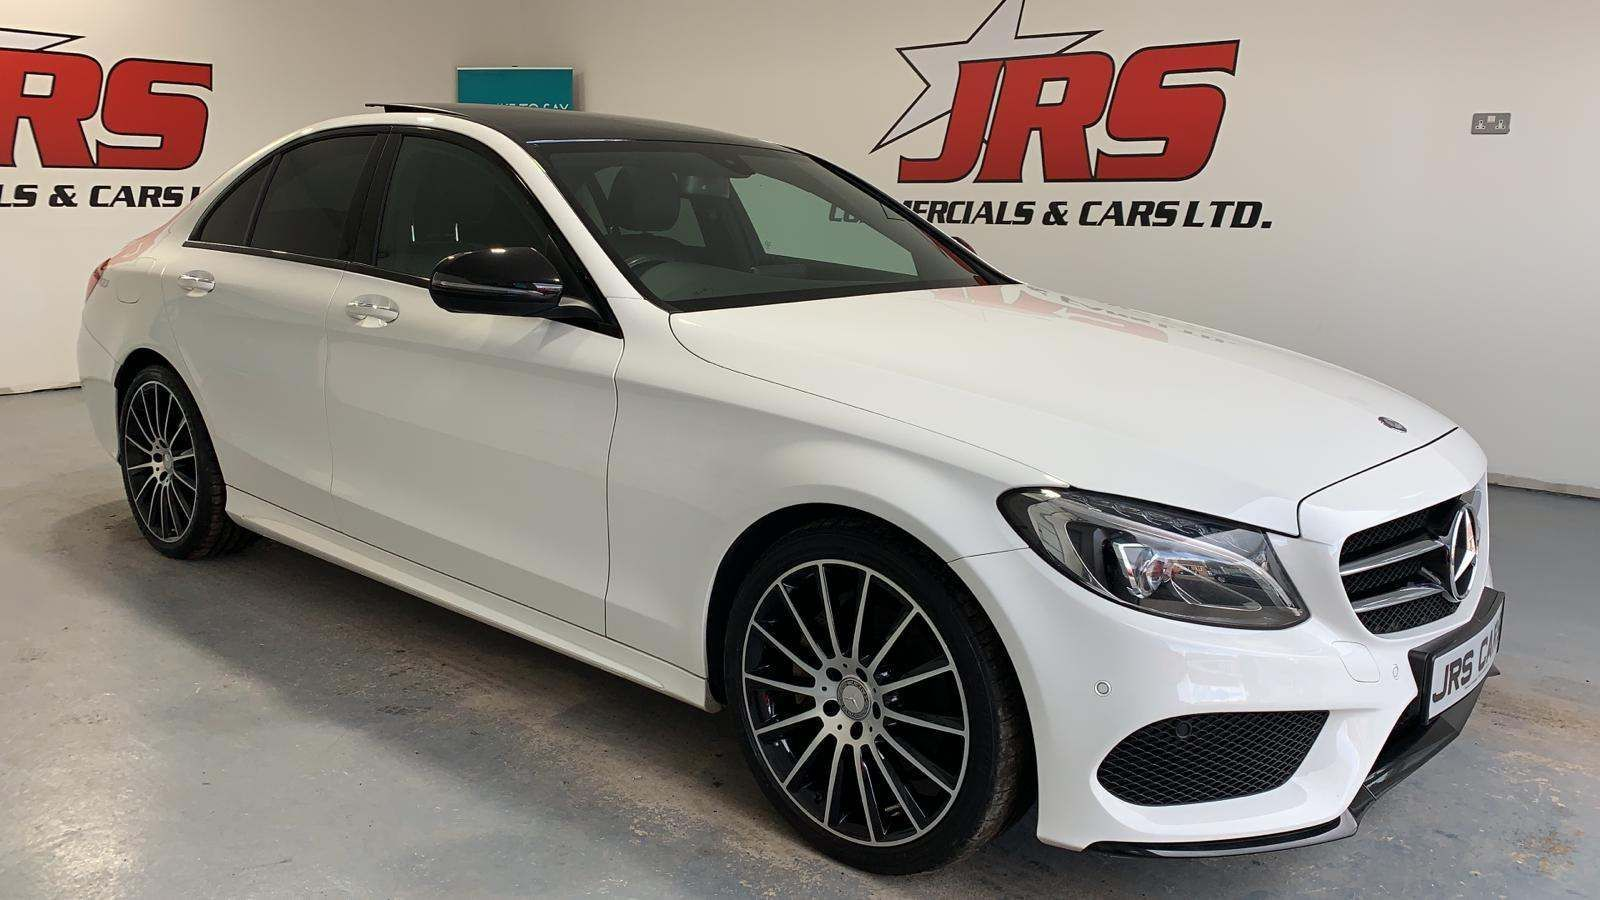 2016 MERCEDES BENZ C Class 2.1 C220d AMG Line (Premium) 7G-Tronic+ (s/s) Diesel Automatic *Panoramic Roof-Full Leather* – J R S Commercials And Cars Dungannon